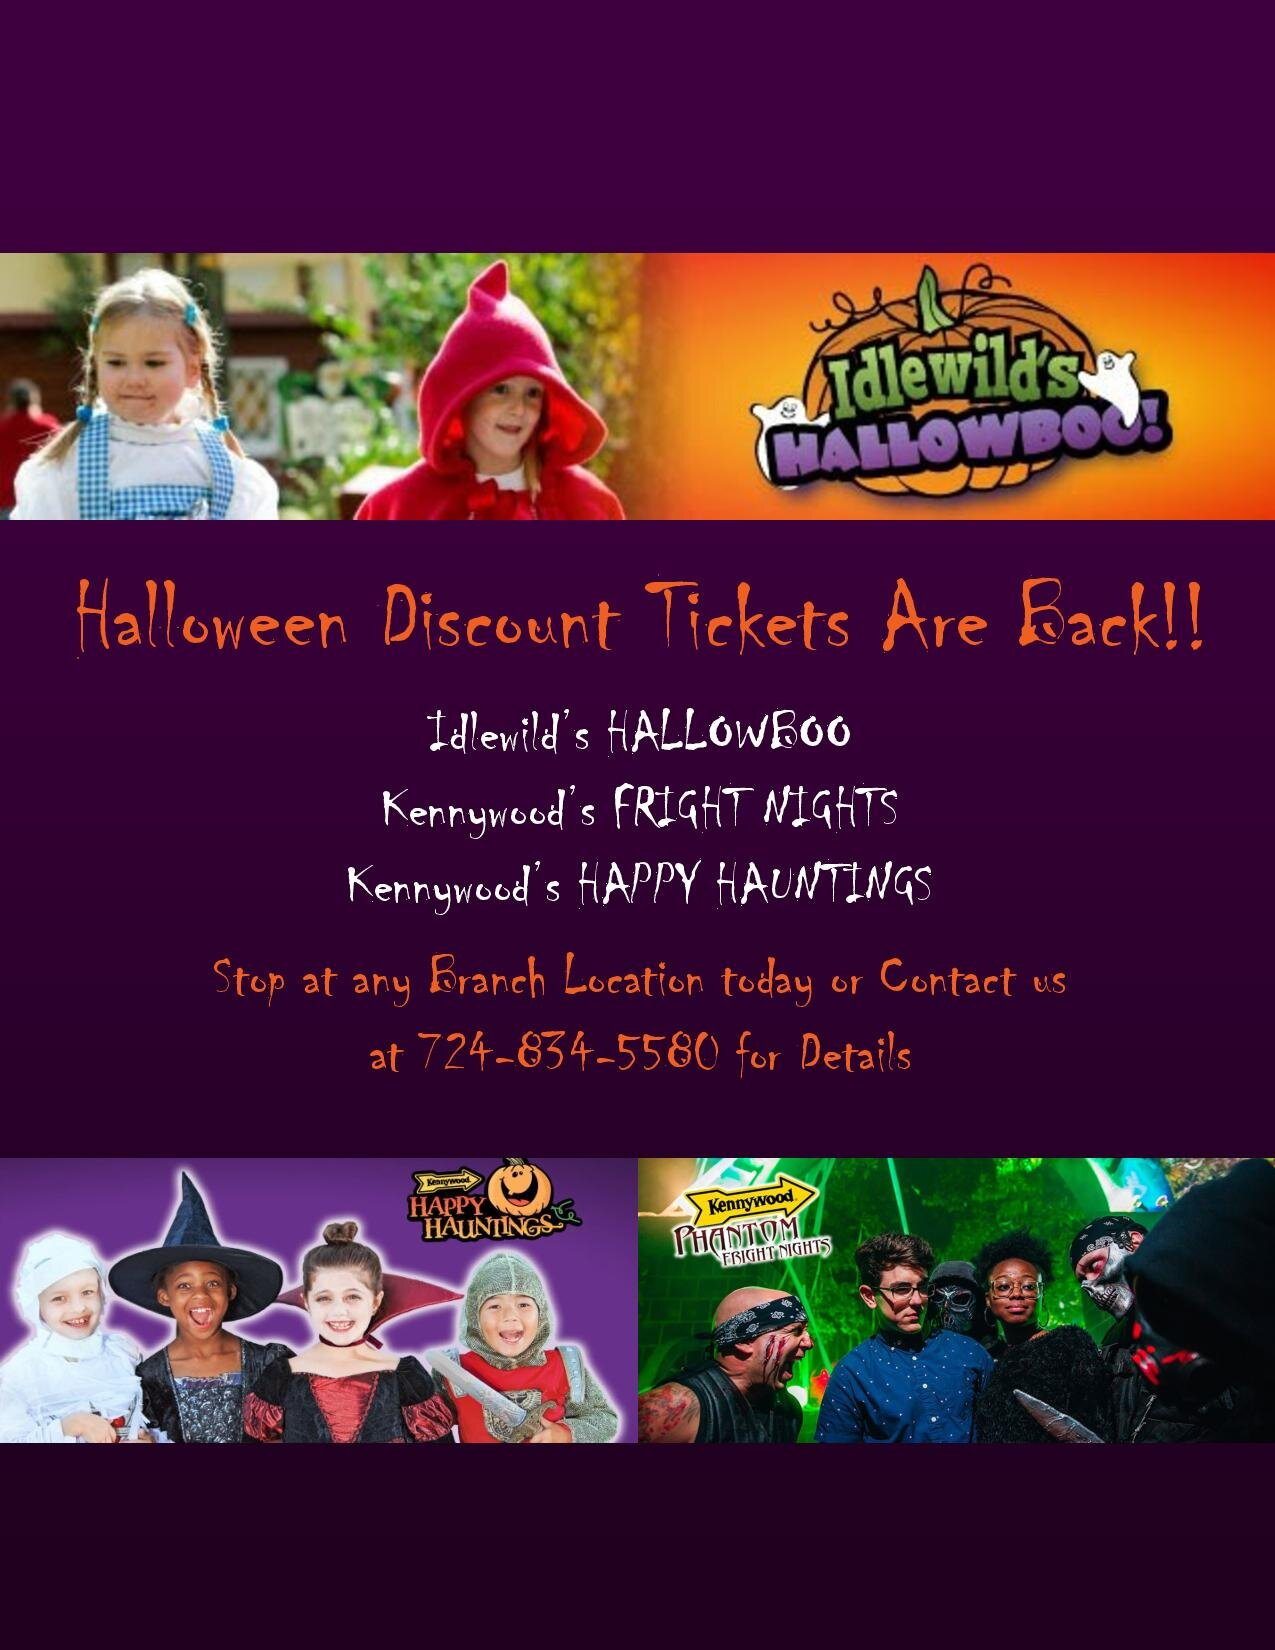 Halloween Discount Tickets Are Back!! Idlewild's HALLOWBOO Kennywood's FRIGHT NIGHTS Kennywood's HAPPY HAUNTINGS Stop at any Branch Location today or Contact us at 724-834-5580 for Details .jpg